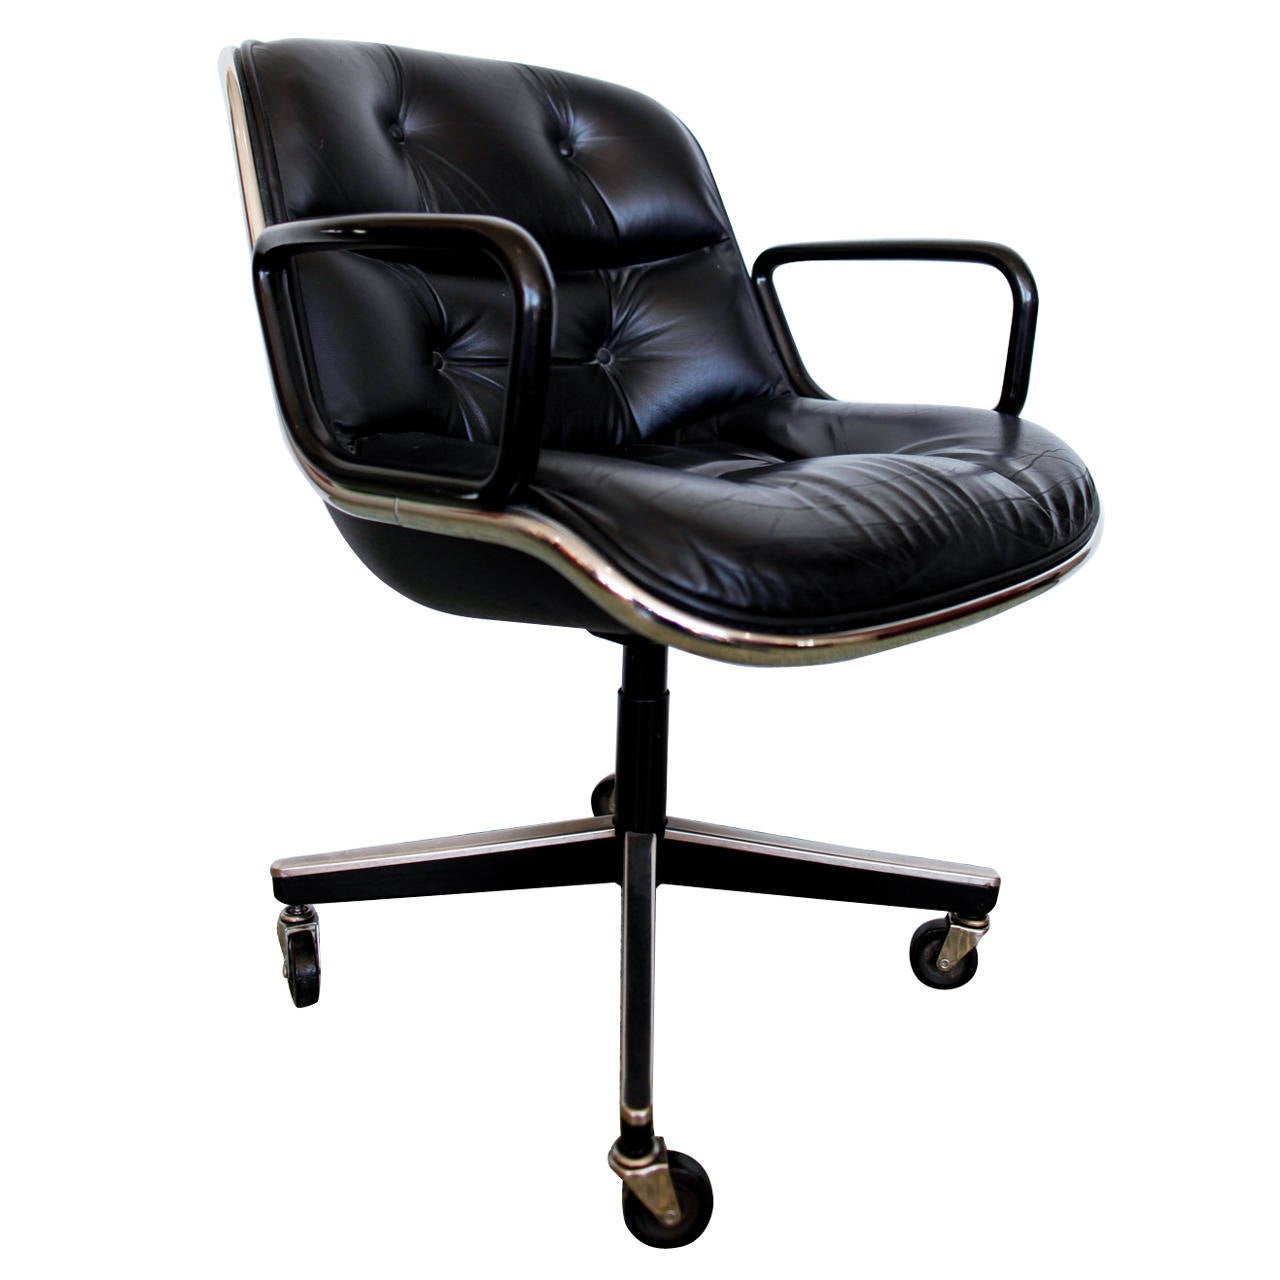 Black Executive Chair by Charles Pollock for Knoll at 1stdibs